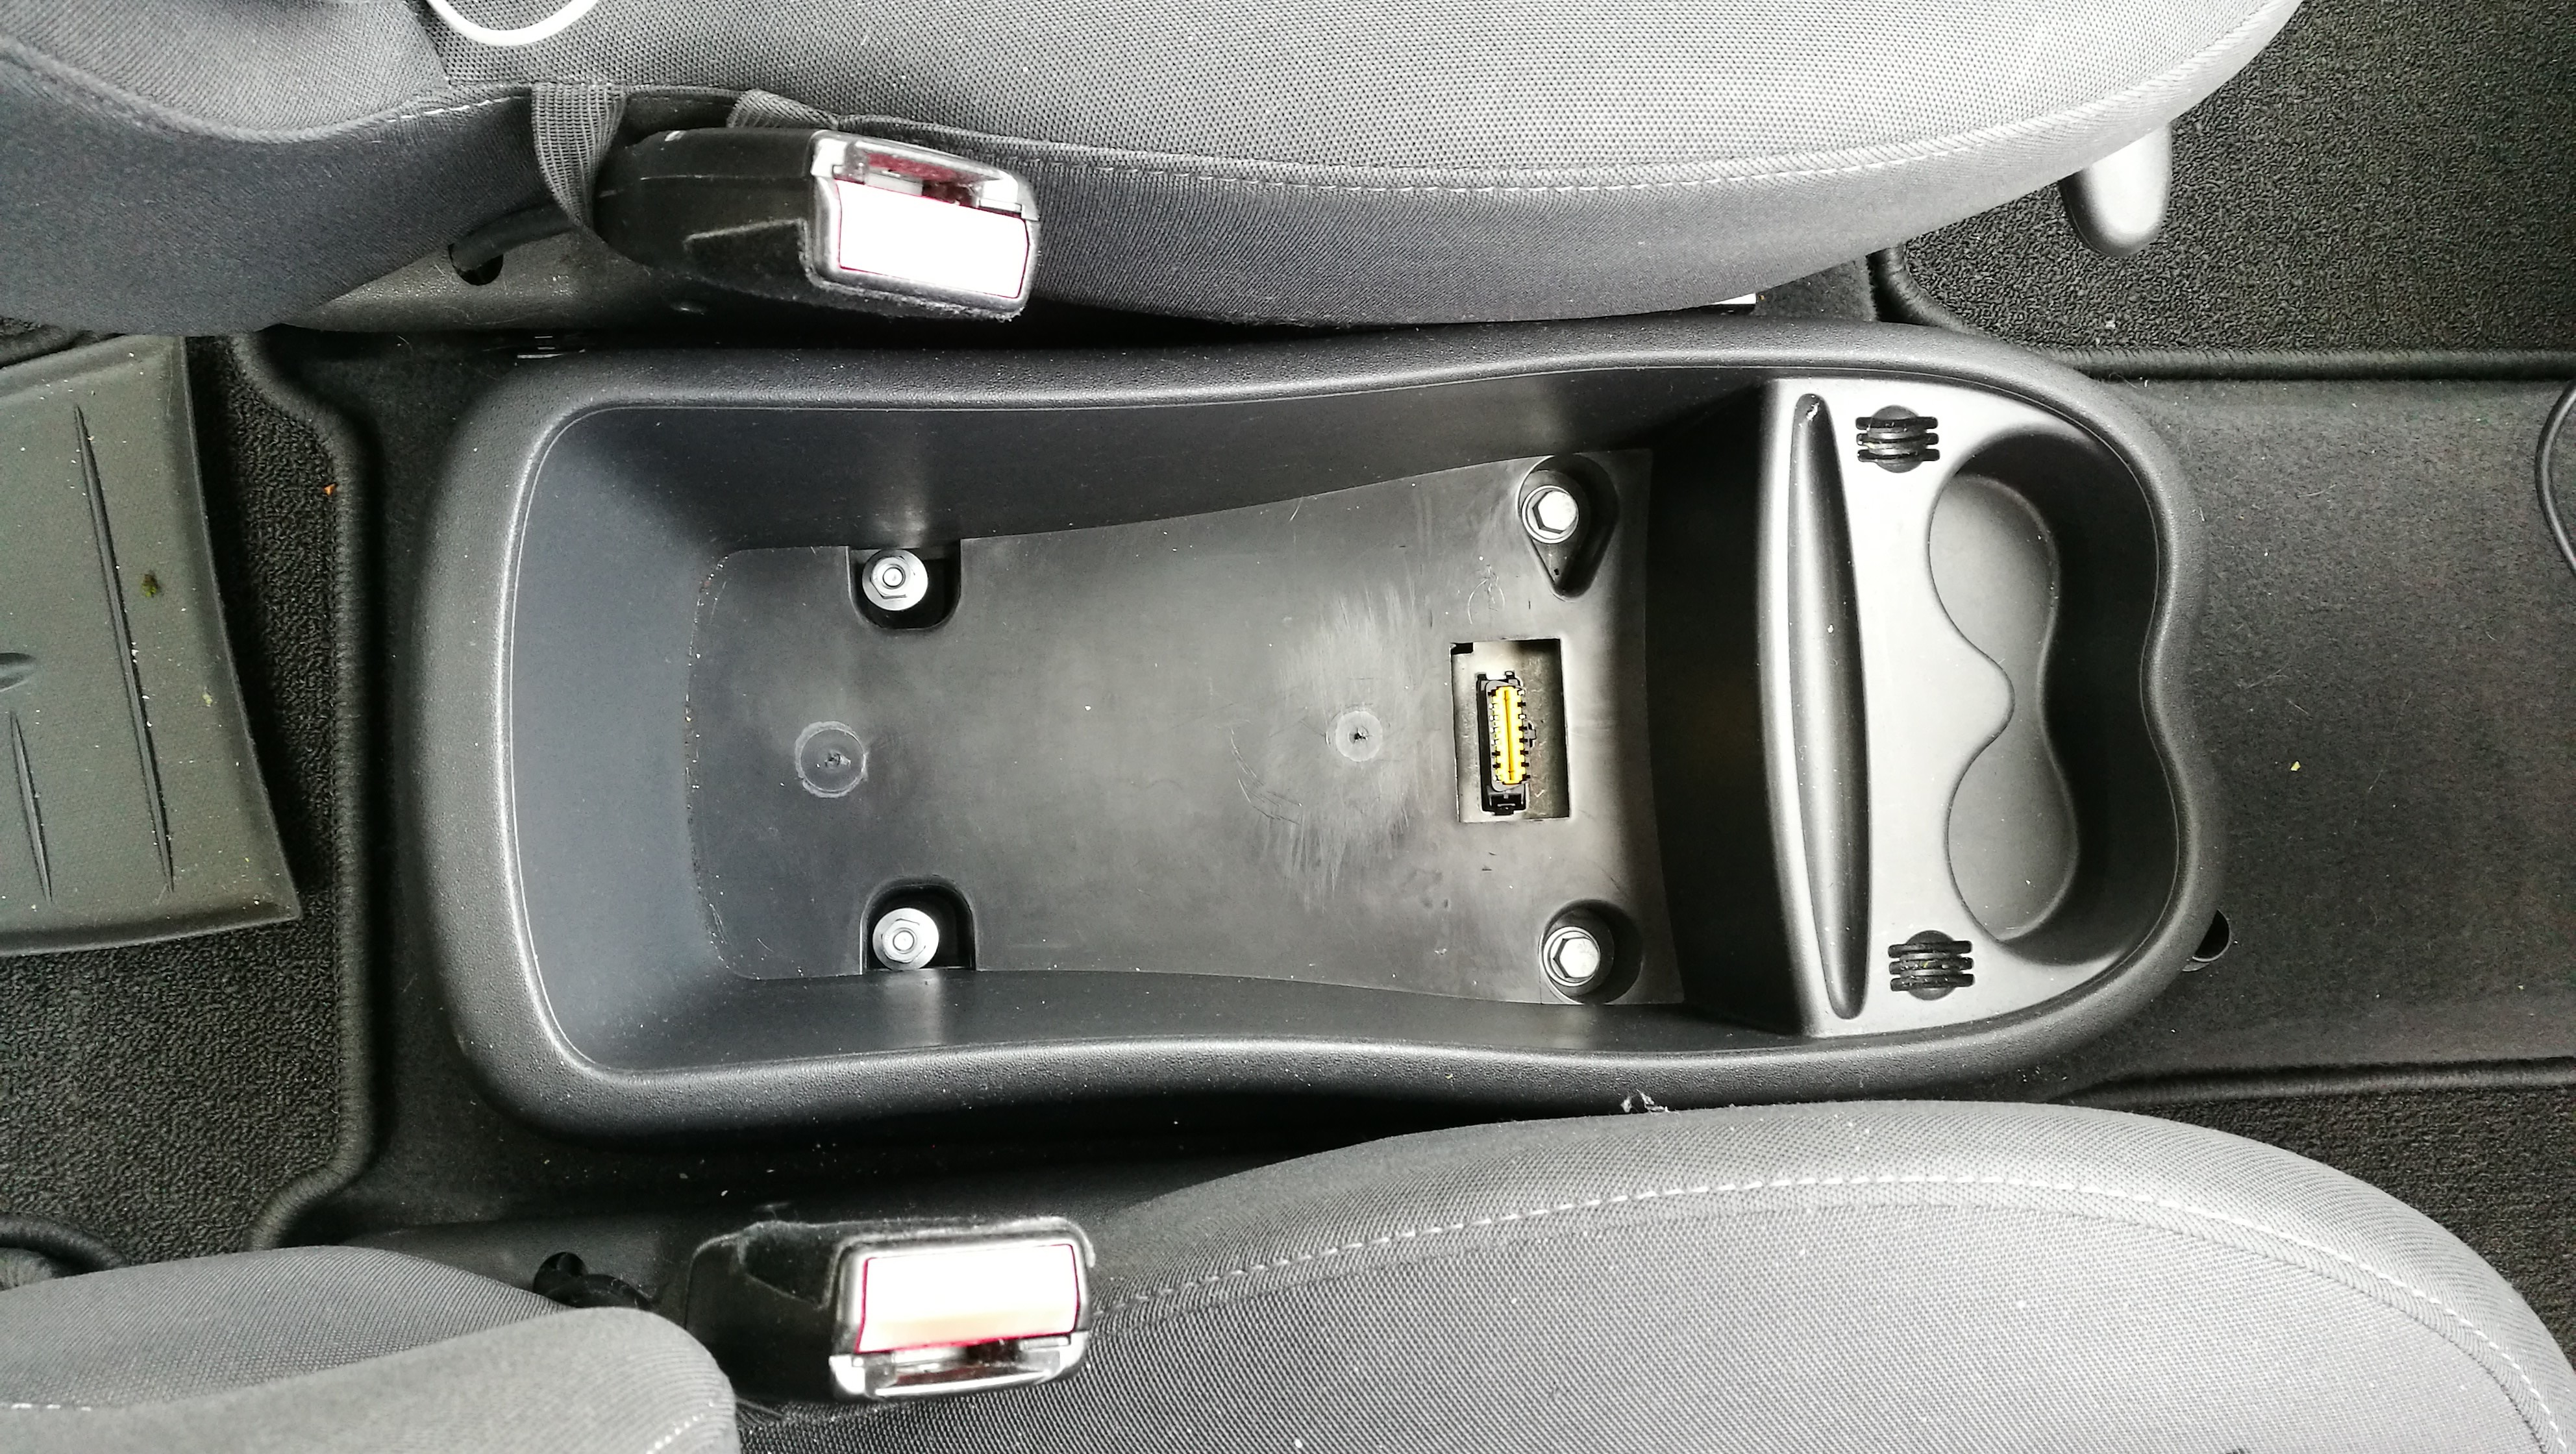 How To - Fit a Sliding Armrest into a Renault Scenic - Kip Hakes